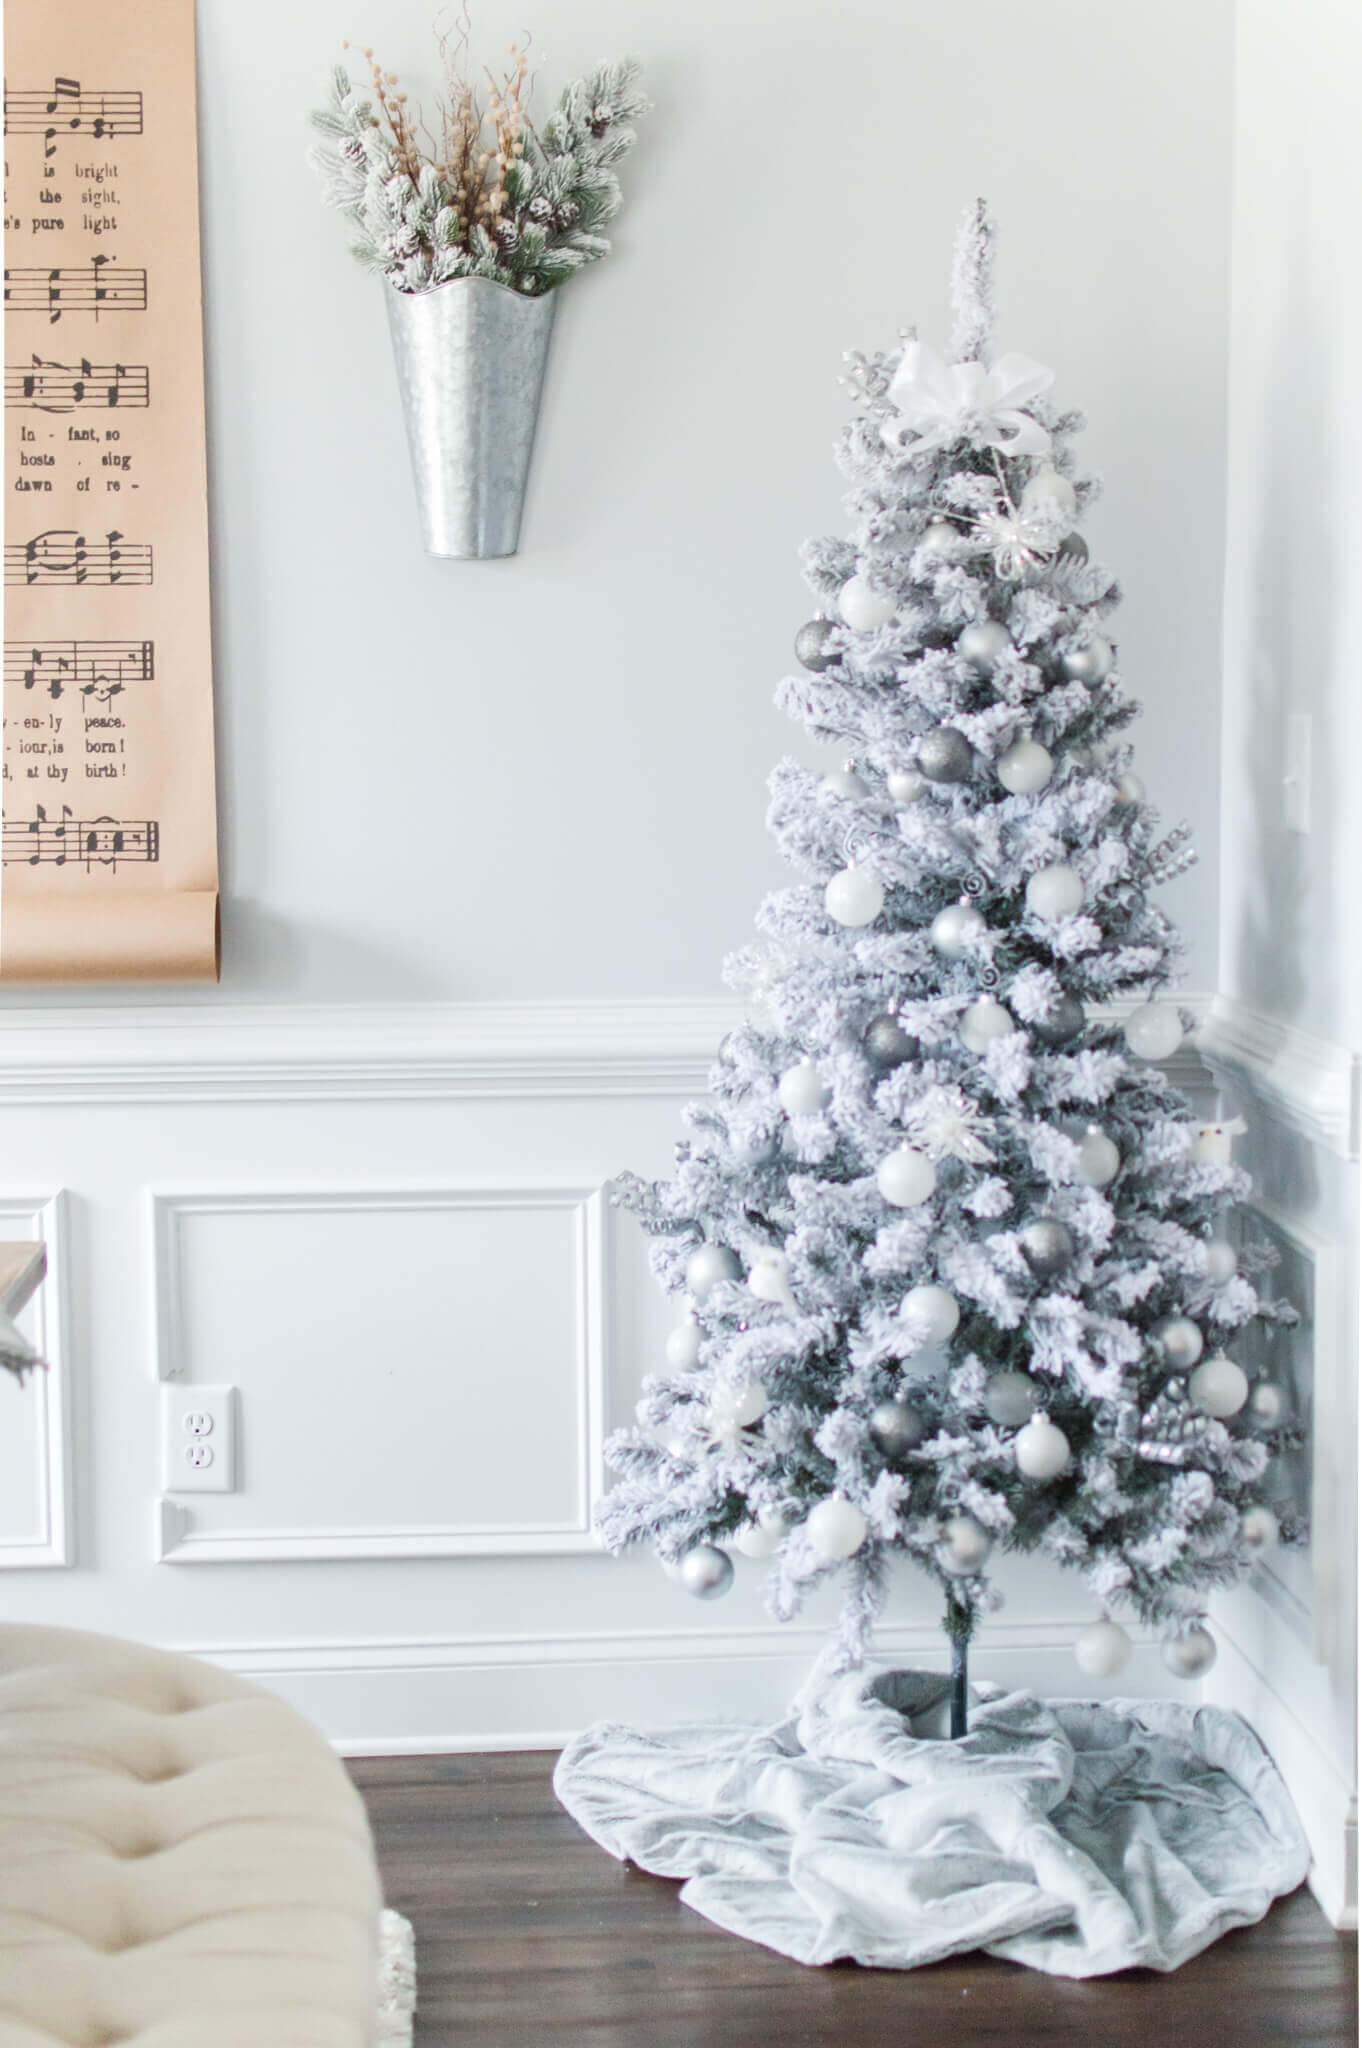 A Peek at Last Year's Christmas Decor / A Hosting Home Blog